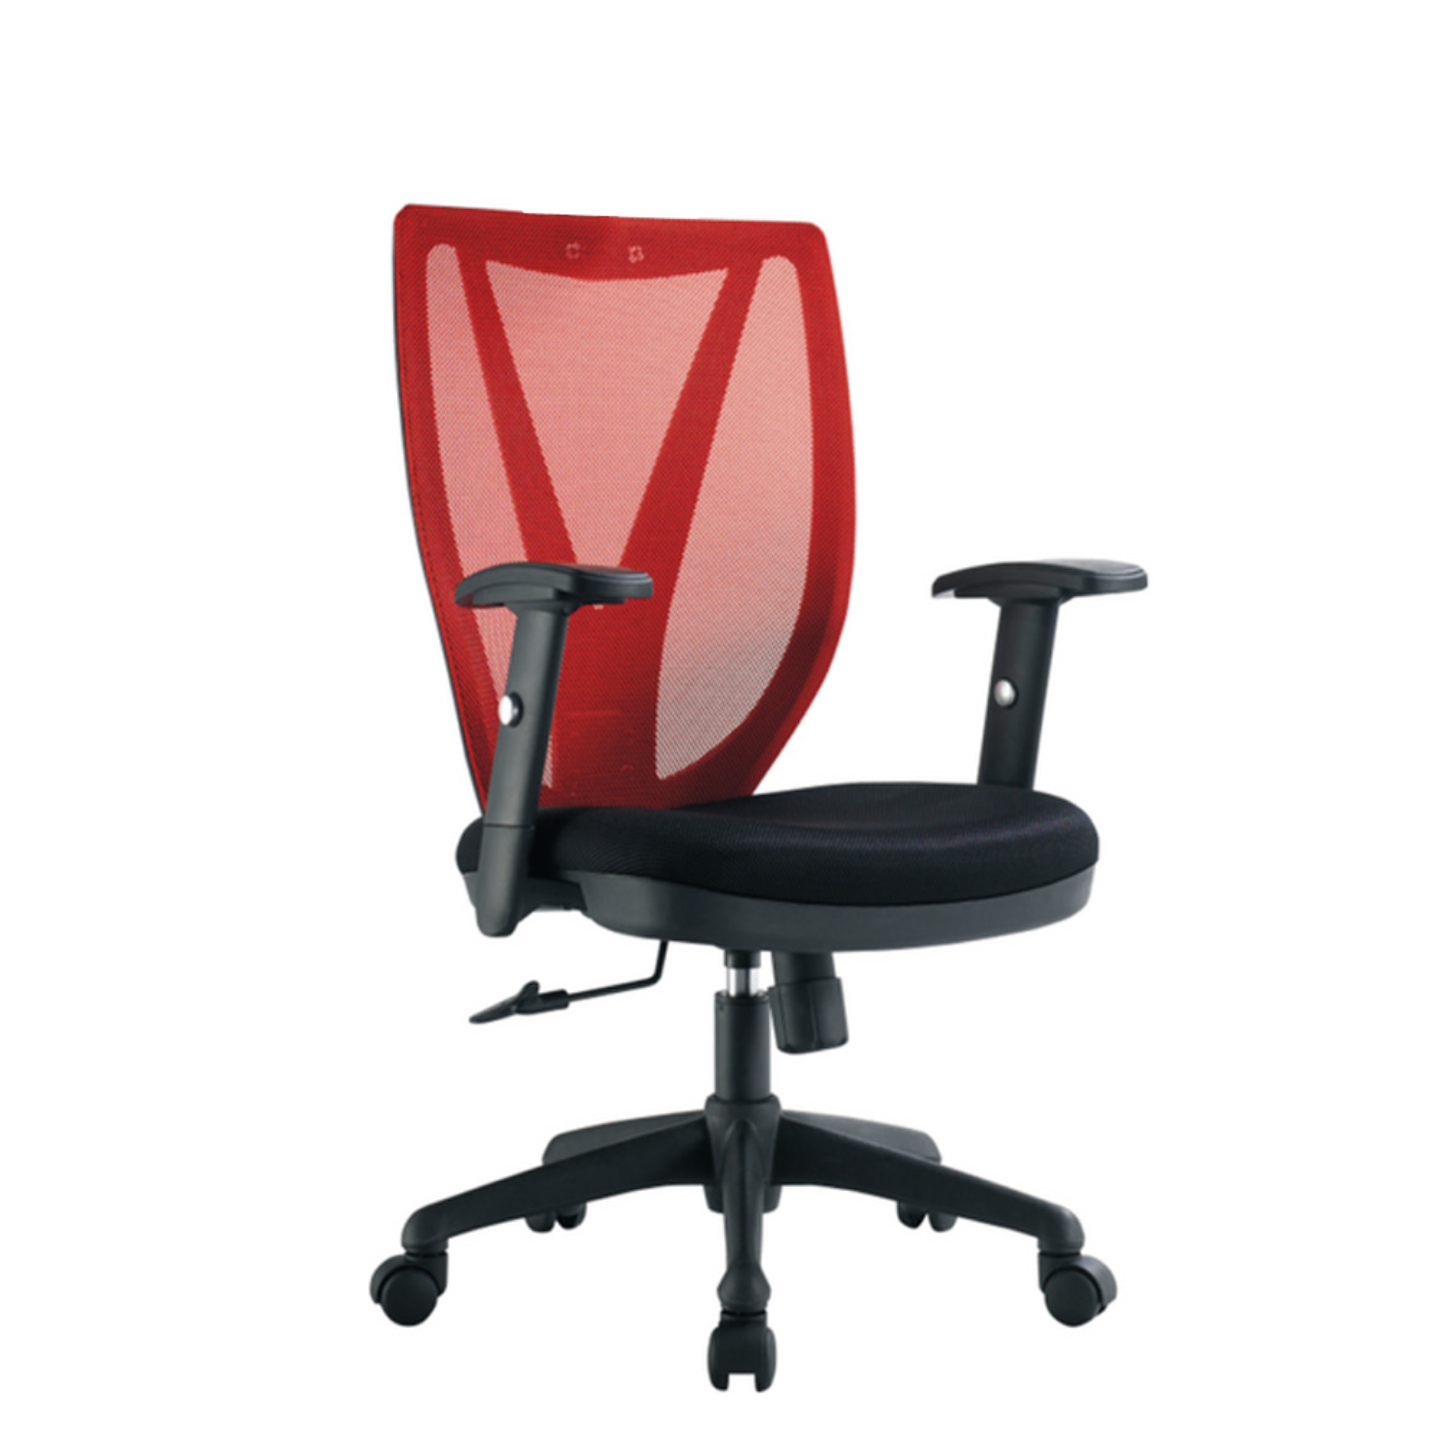 Home Office Chair Model - Fair  Ergonomic Office Chair